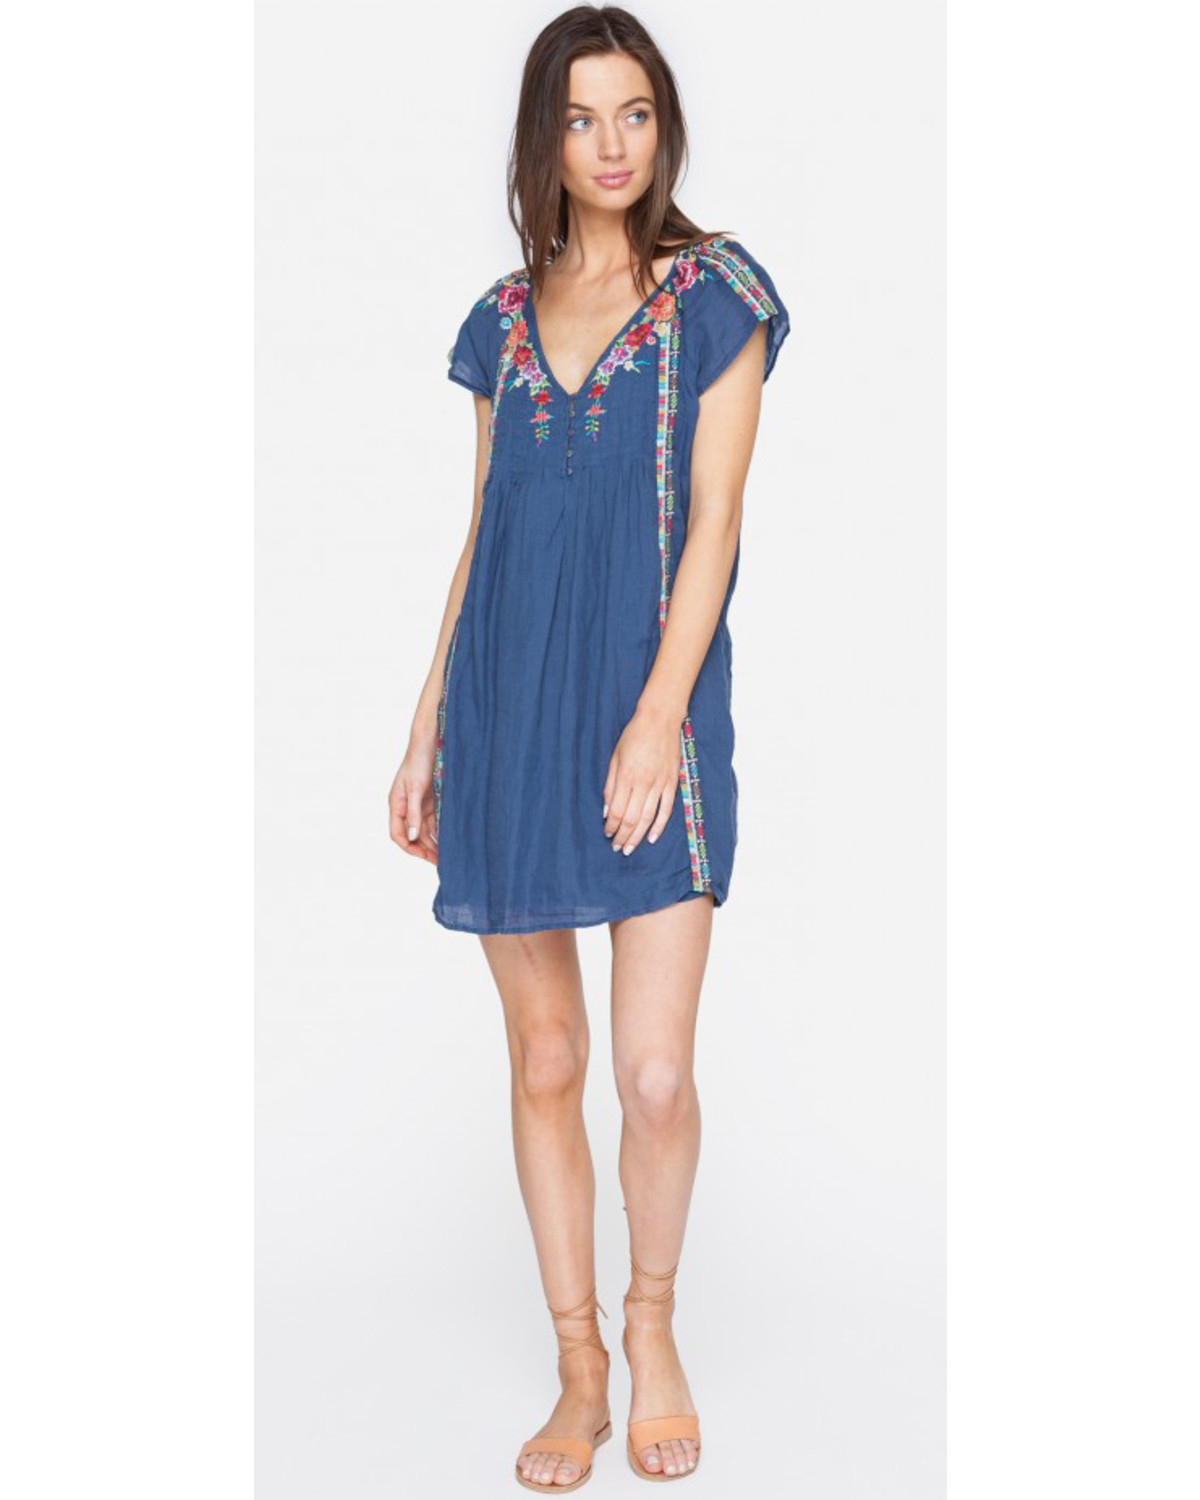 Dresses - Country Outfitter